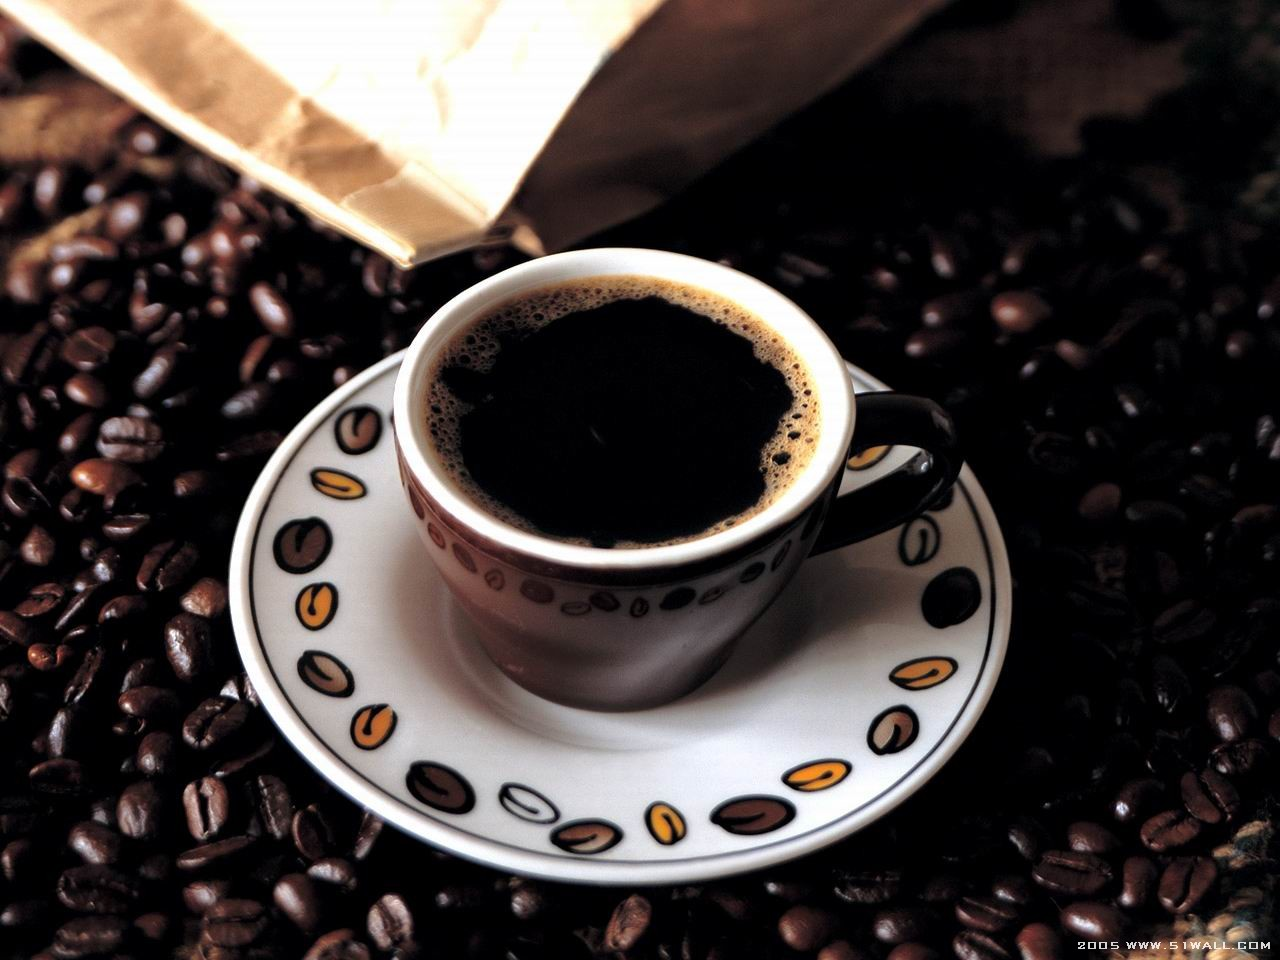 Drinking Coffee Black Weight Loss